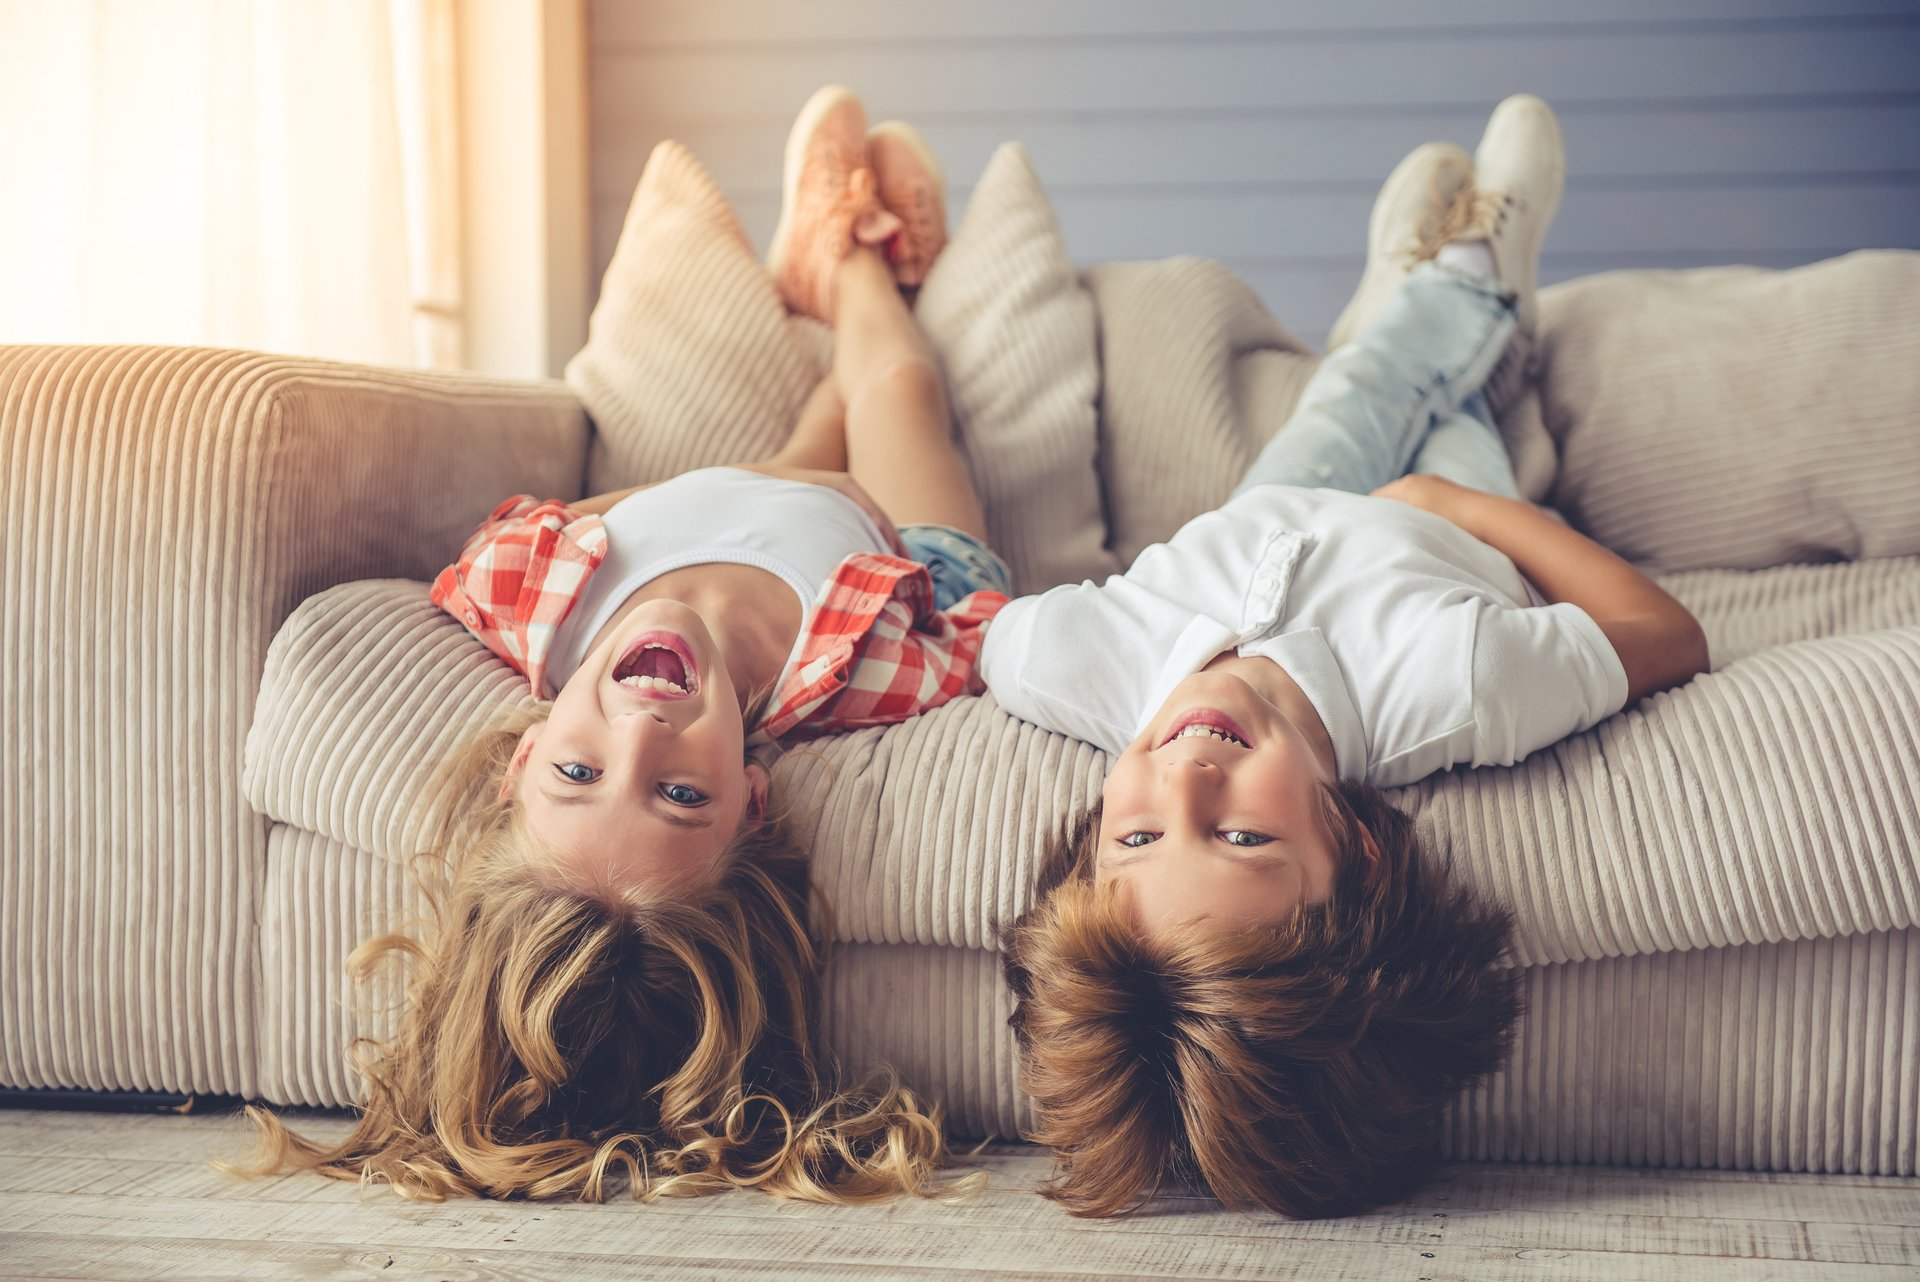 A girl and boy lying upside down on the couch